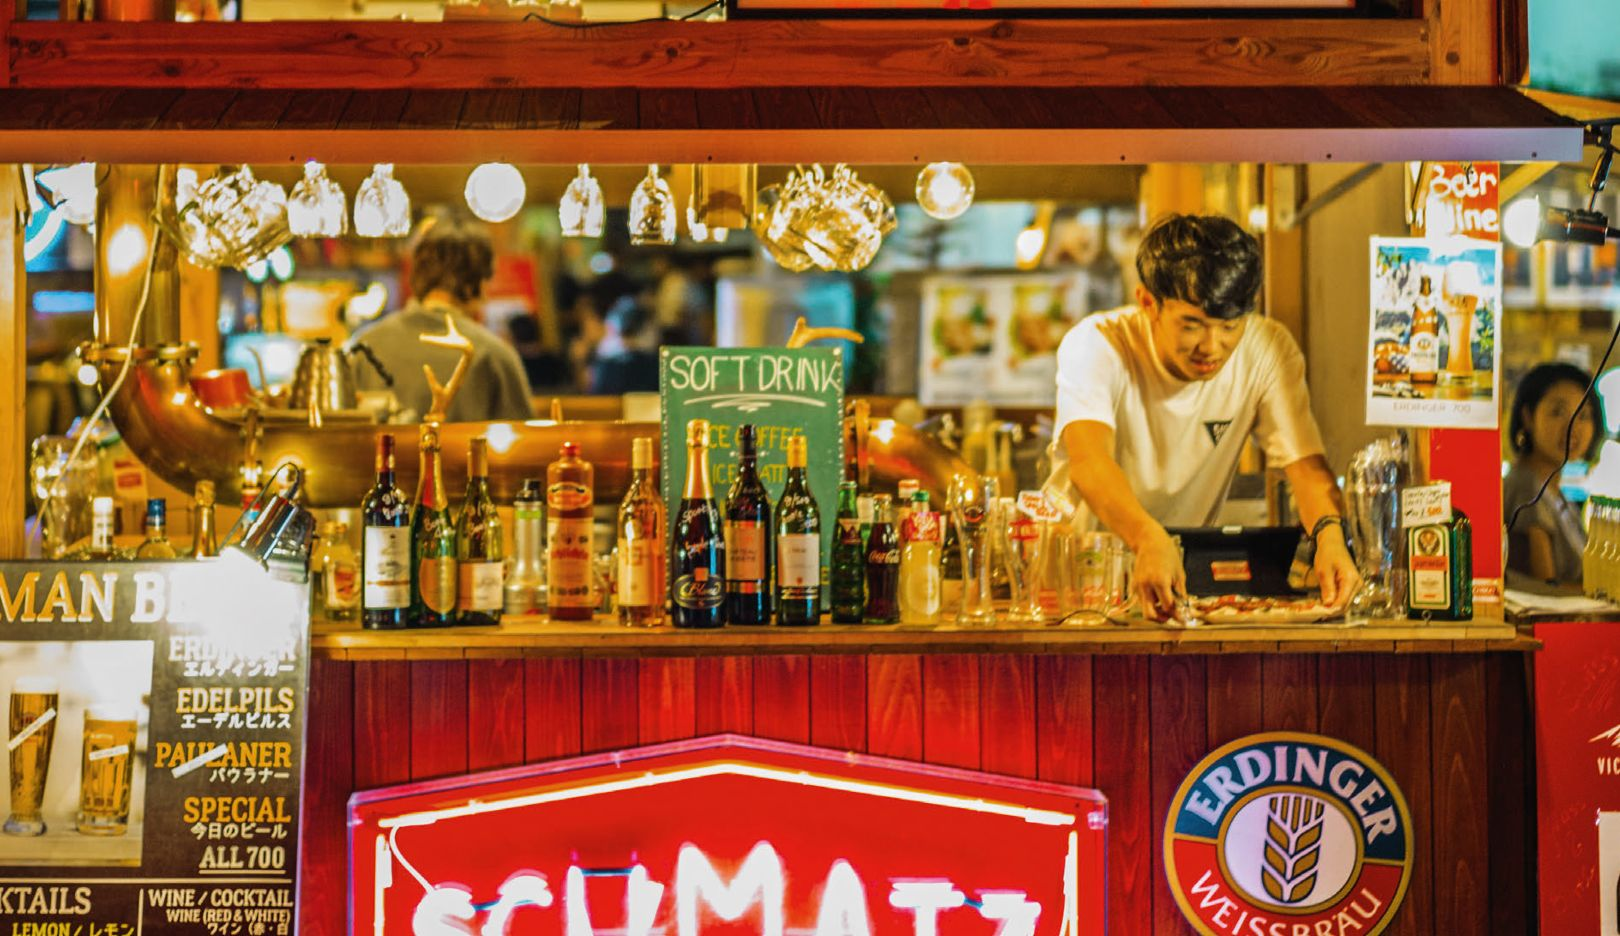 A piece of Germany: André Lotterer found the Schmatz stand in Toyko—with its schnitzel burgers, wursts, and German beer, it reminded him of his homeland.